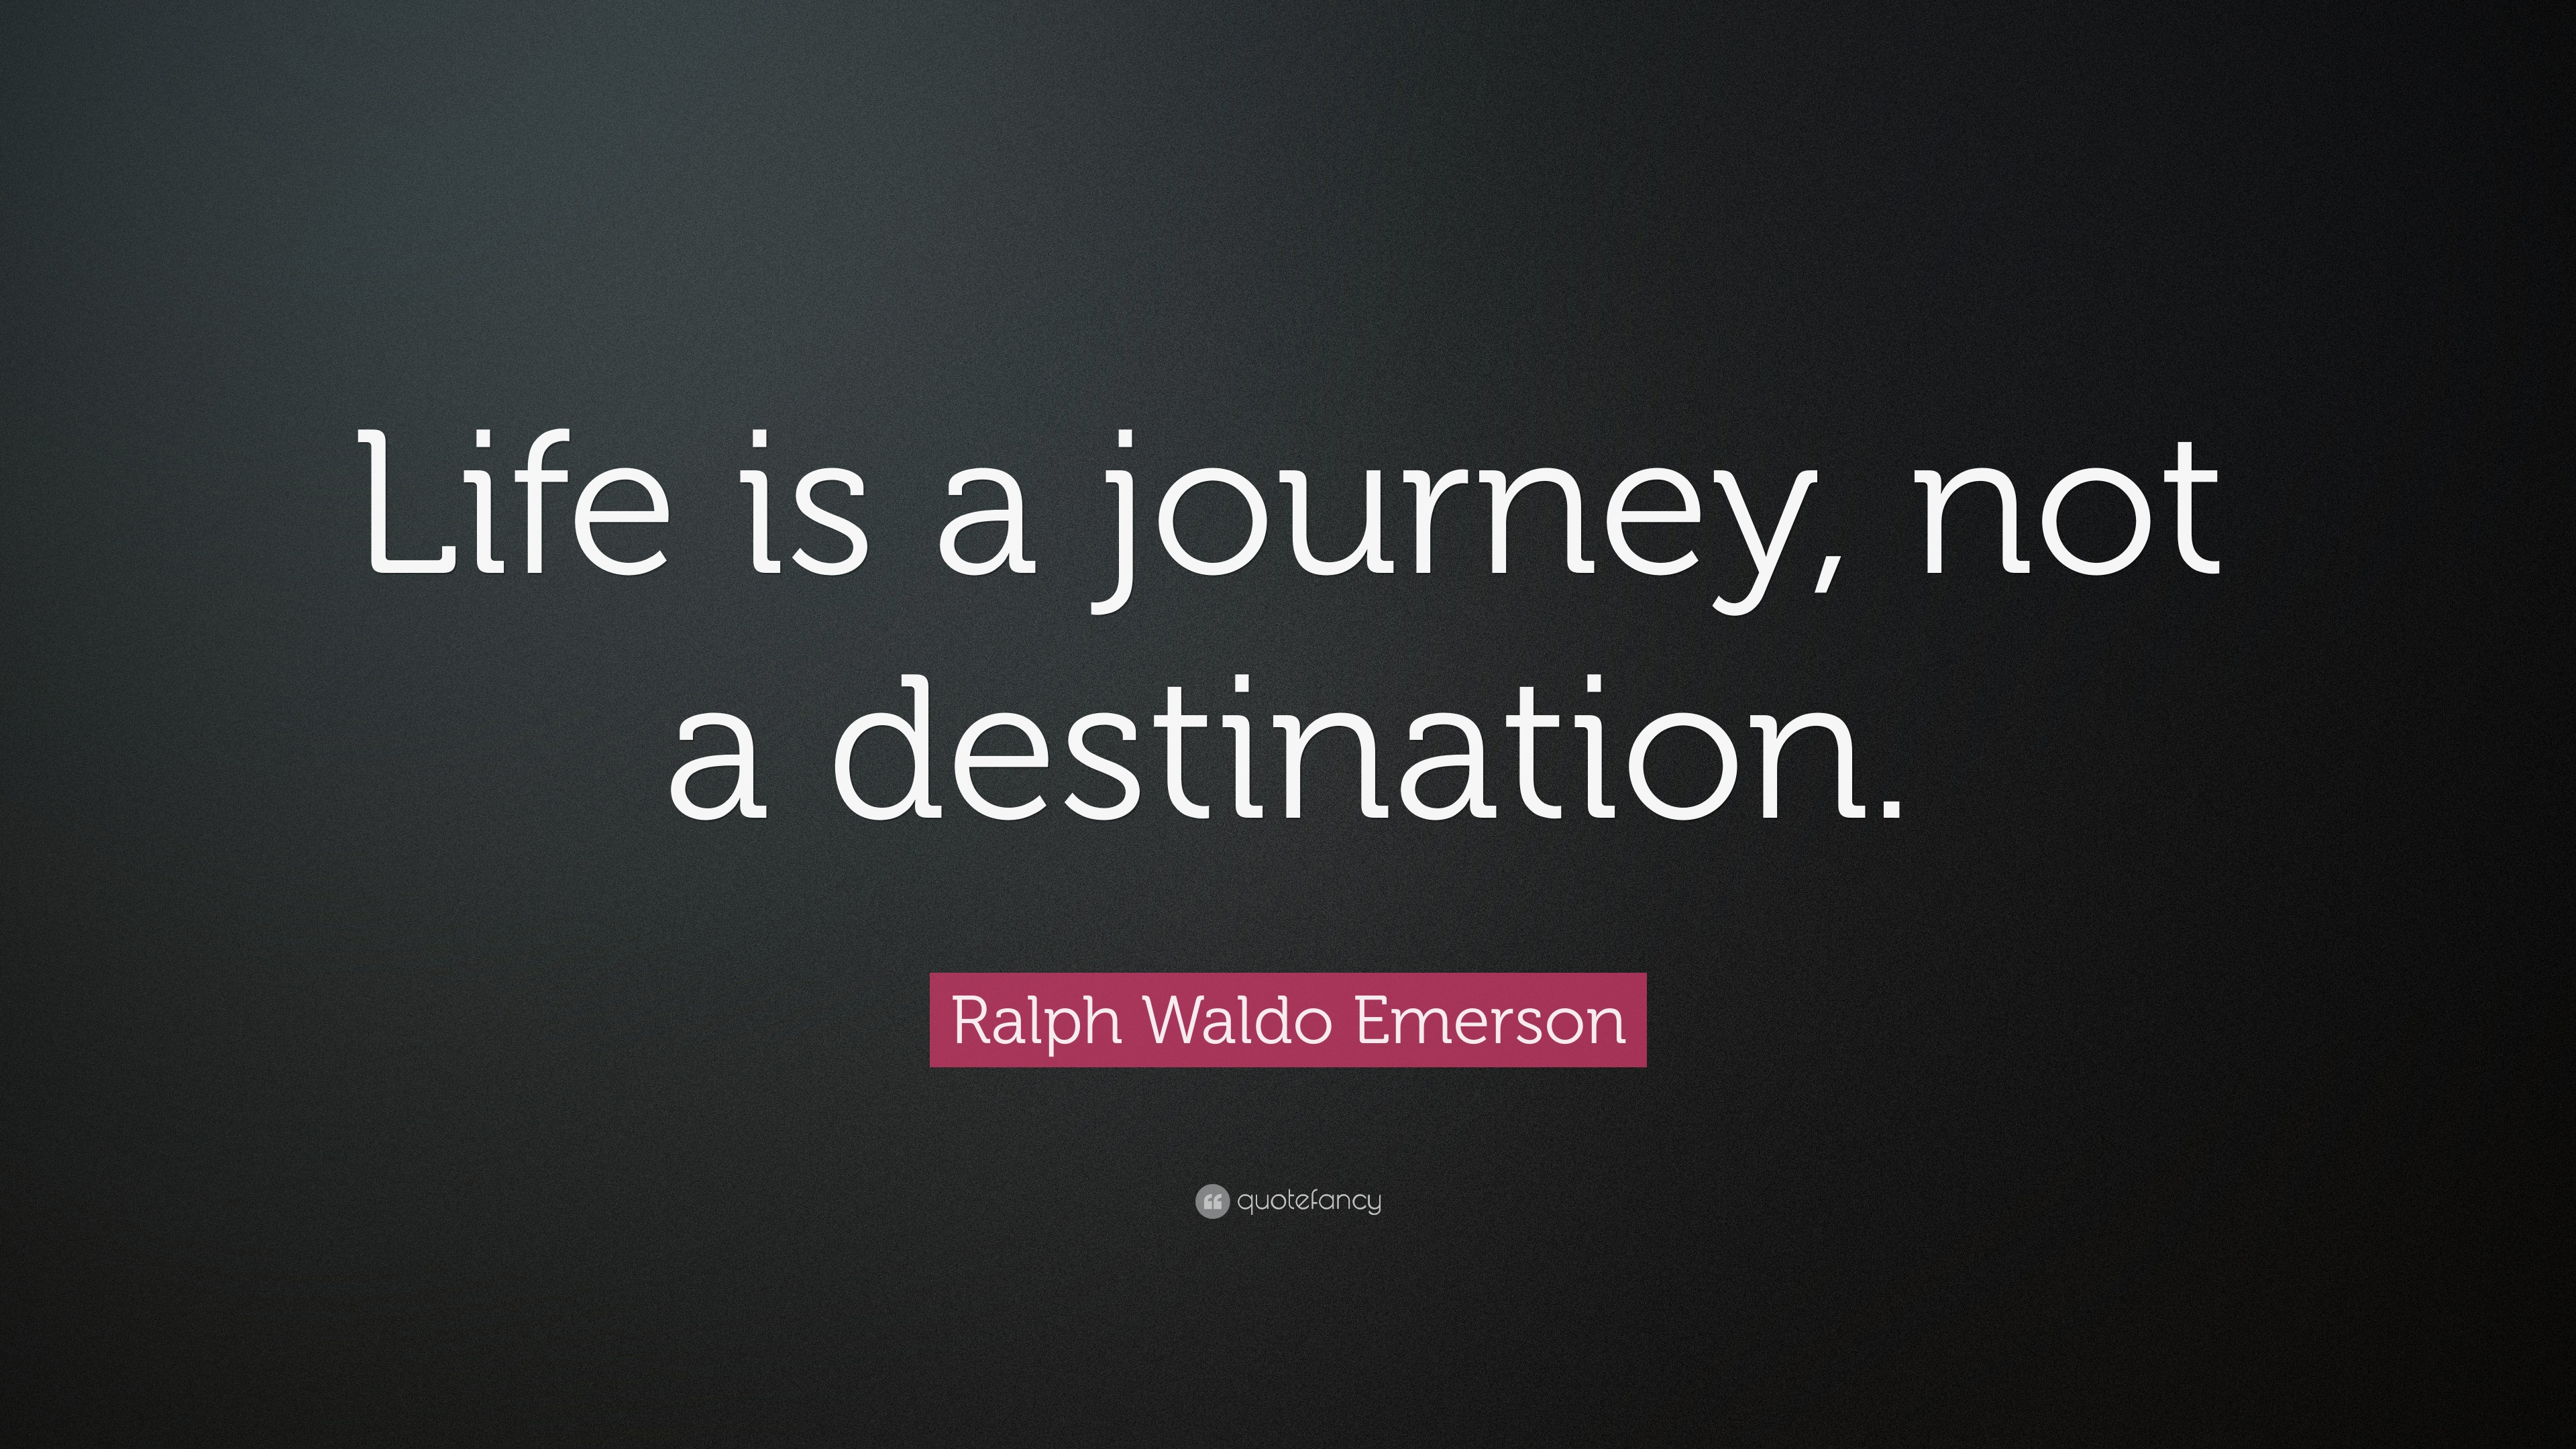 Ralph waldo emerson quote life is a journey not a destination ralph waldo emerson quote life is a journey not a destination stopboris Choice Image